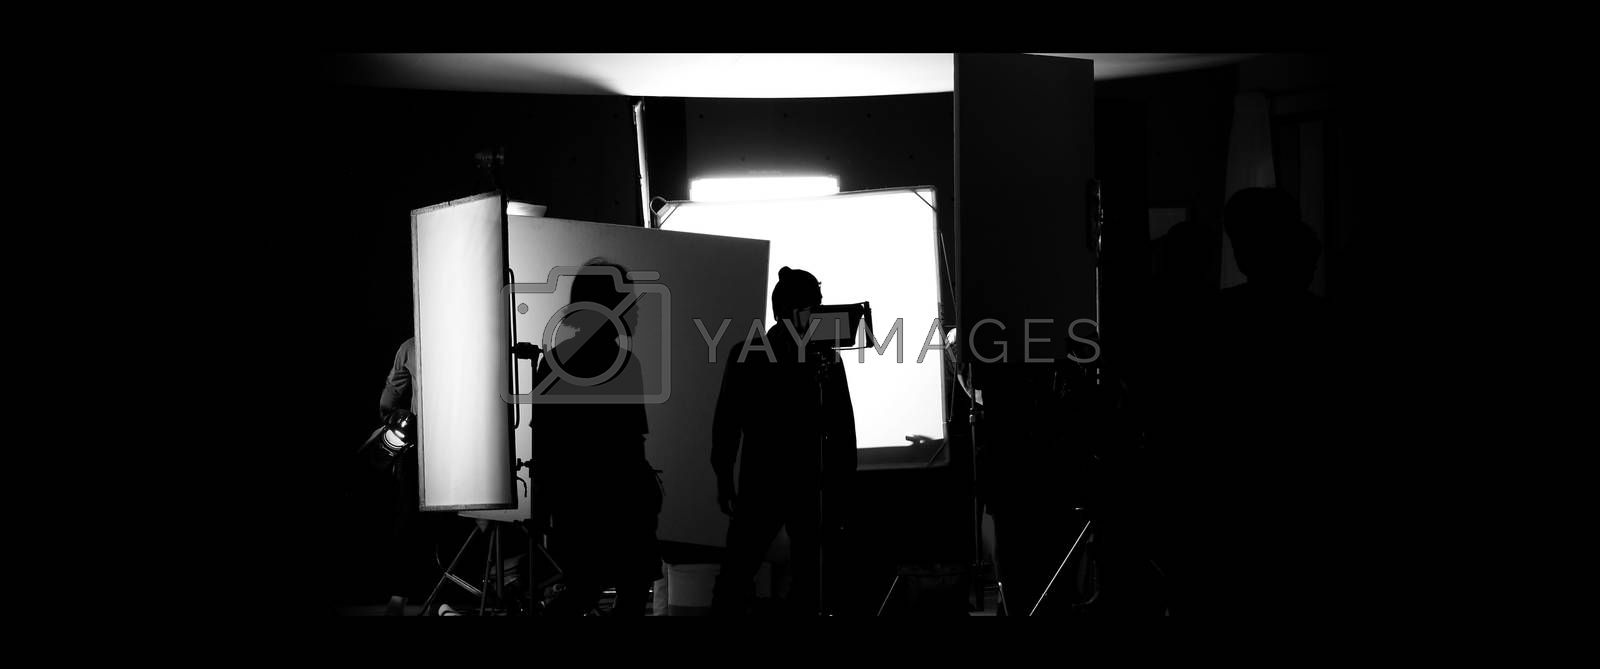 Shooting studio behind the scenes in silhouette images by Gnepphoto